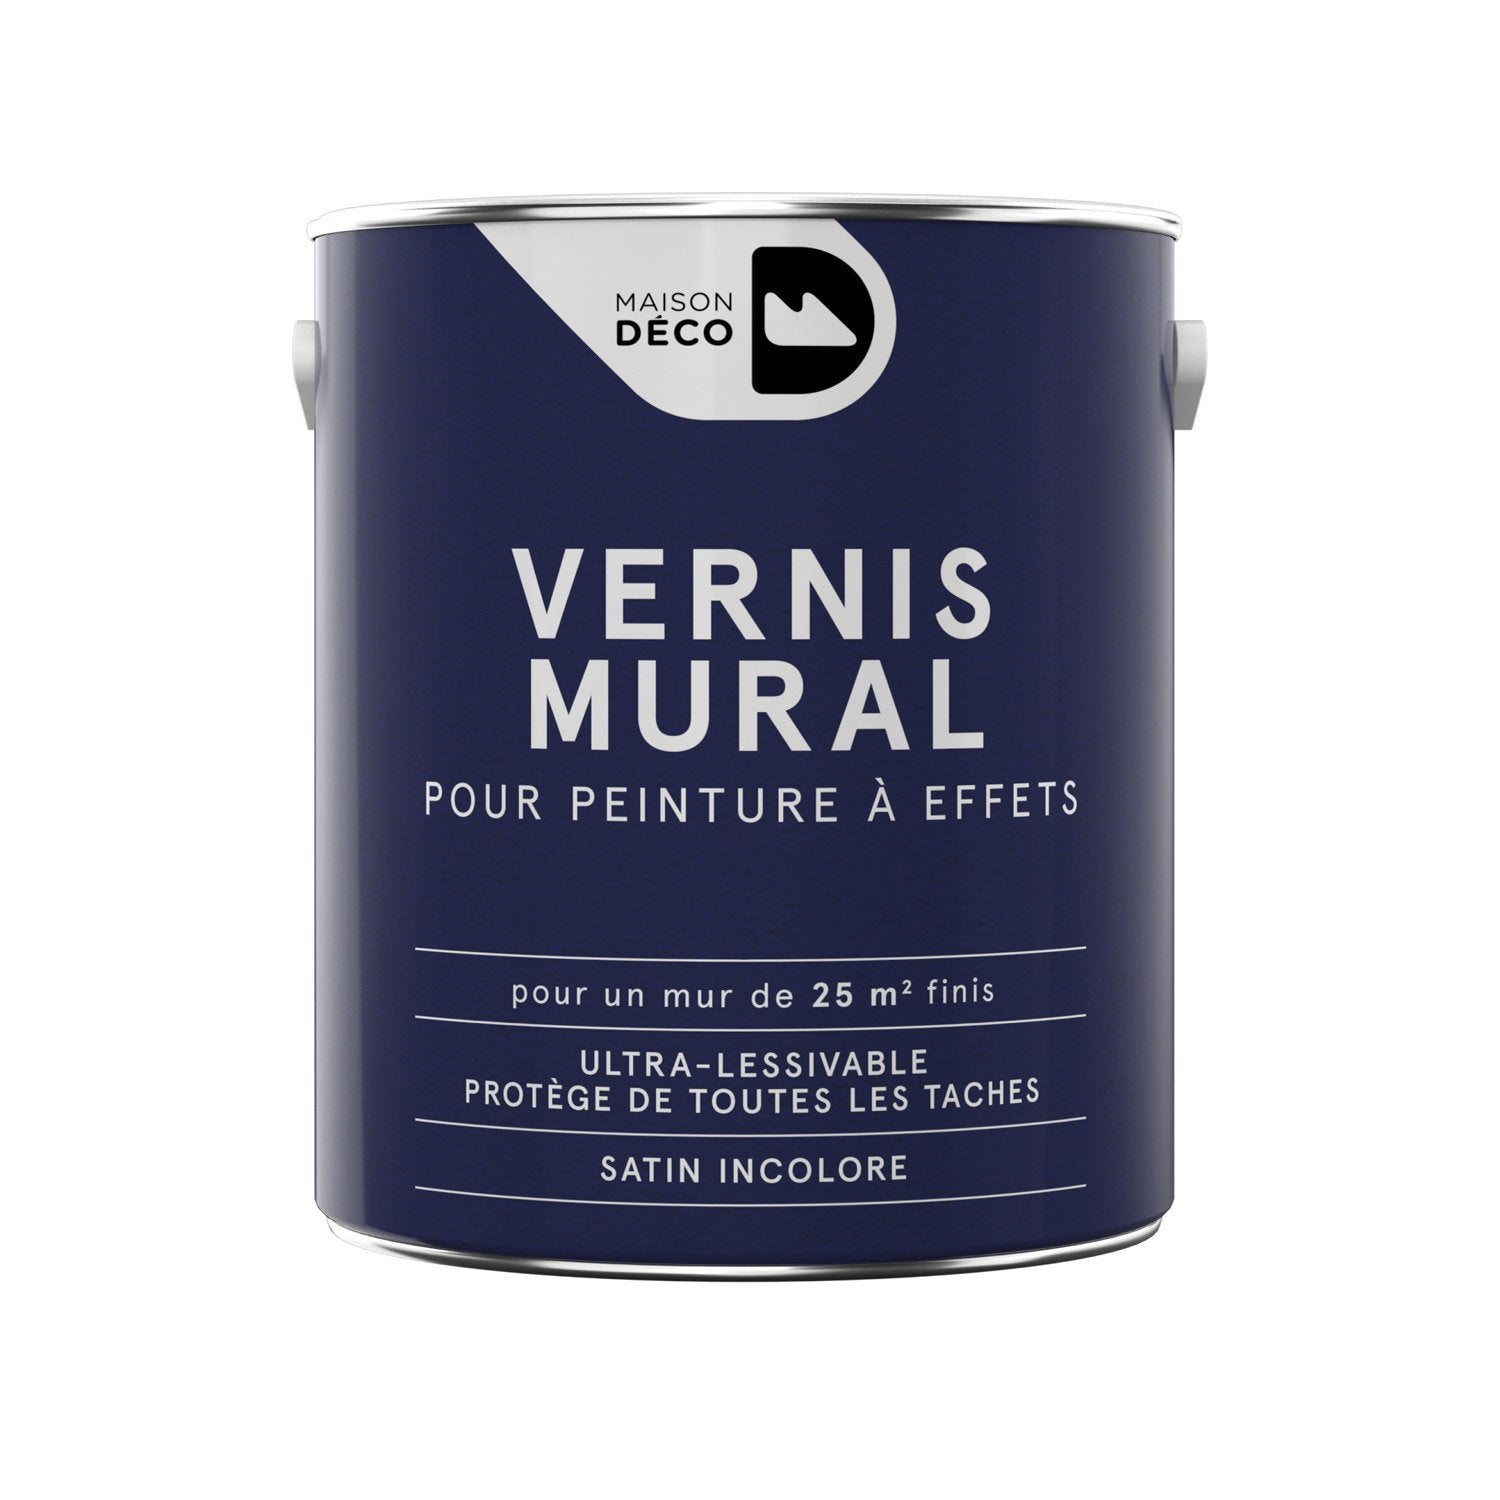 vernis mural leroy merlin resine de protection pour peinture. Black Bedroom Furniture Sets. Home Design Ideas